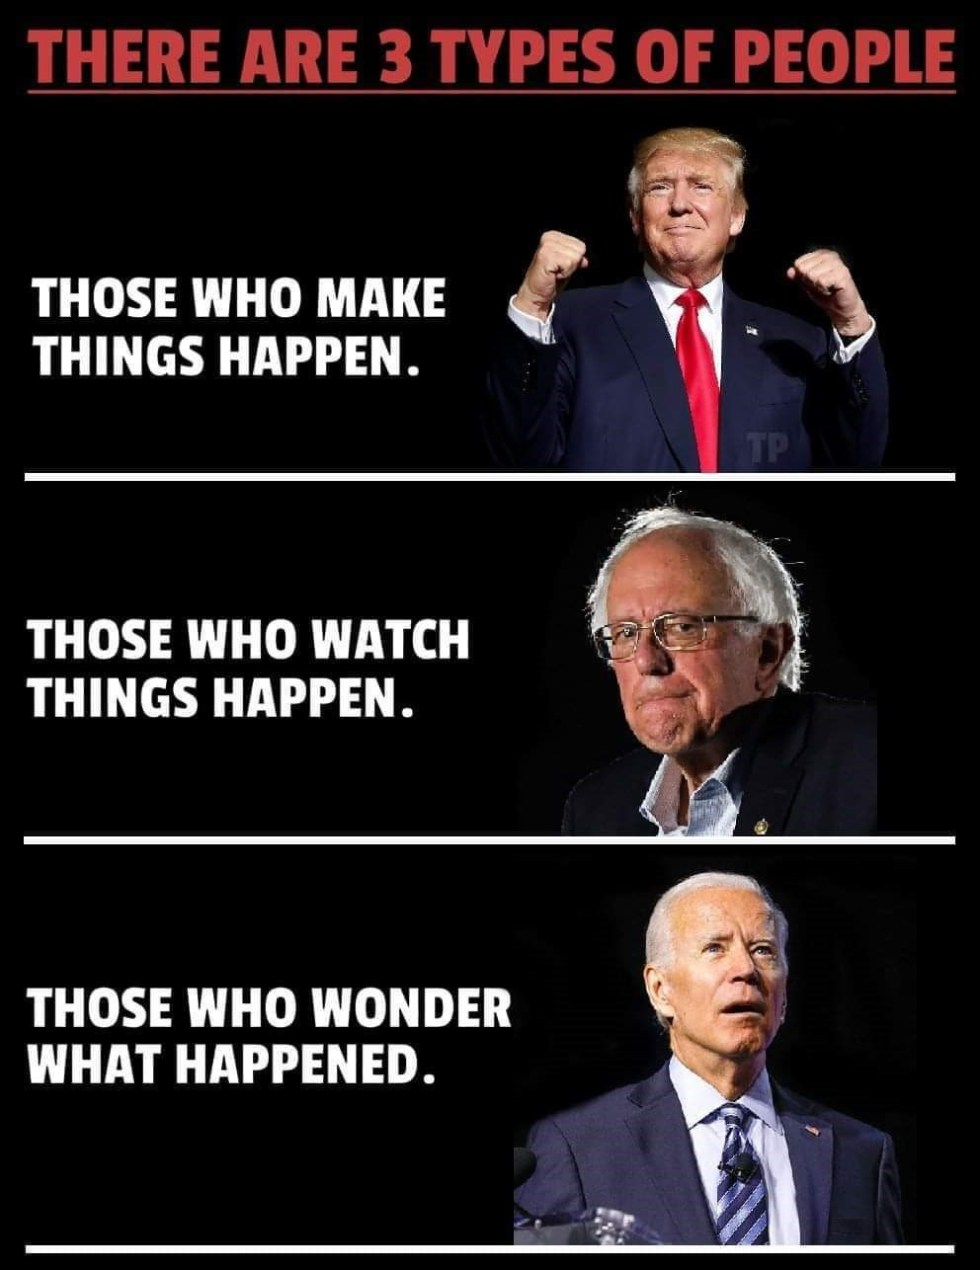 trump sanders biden things happen